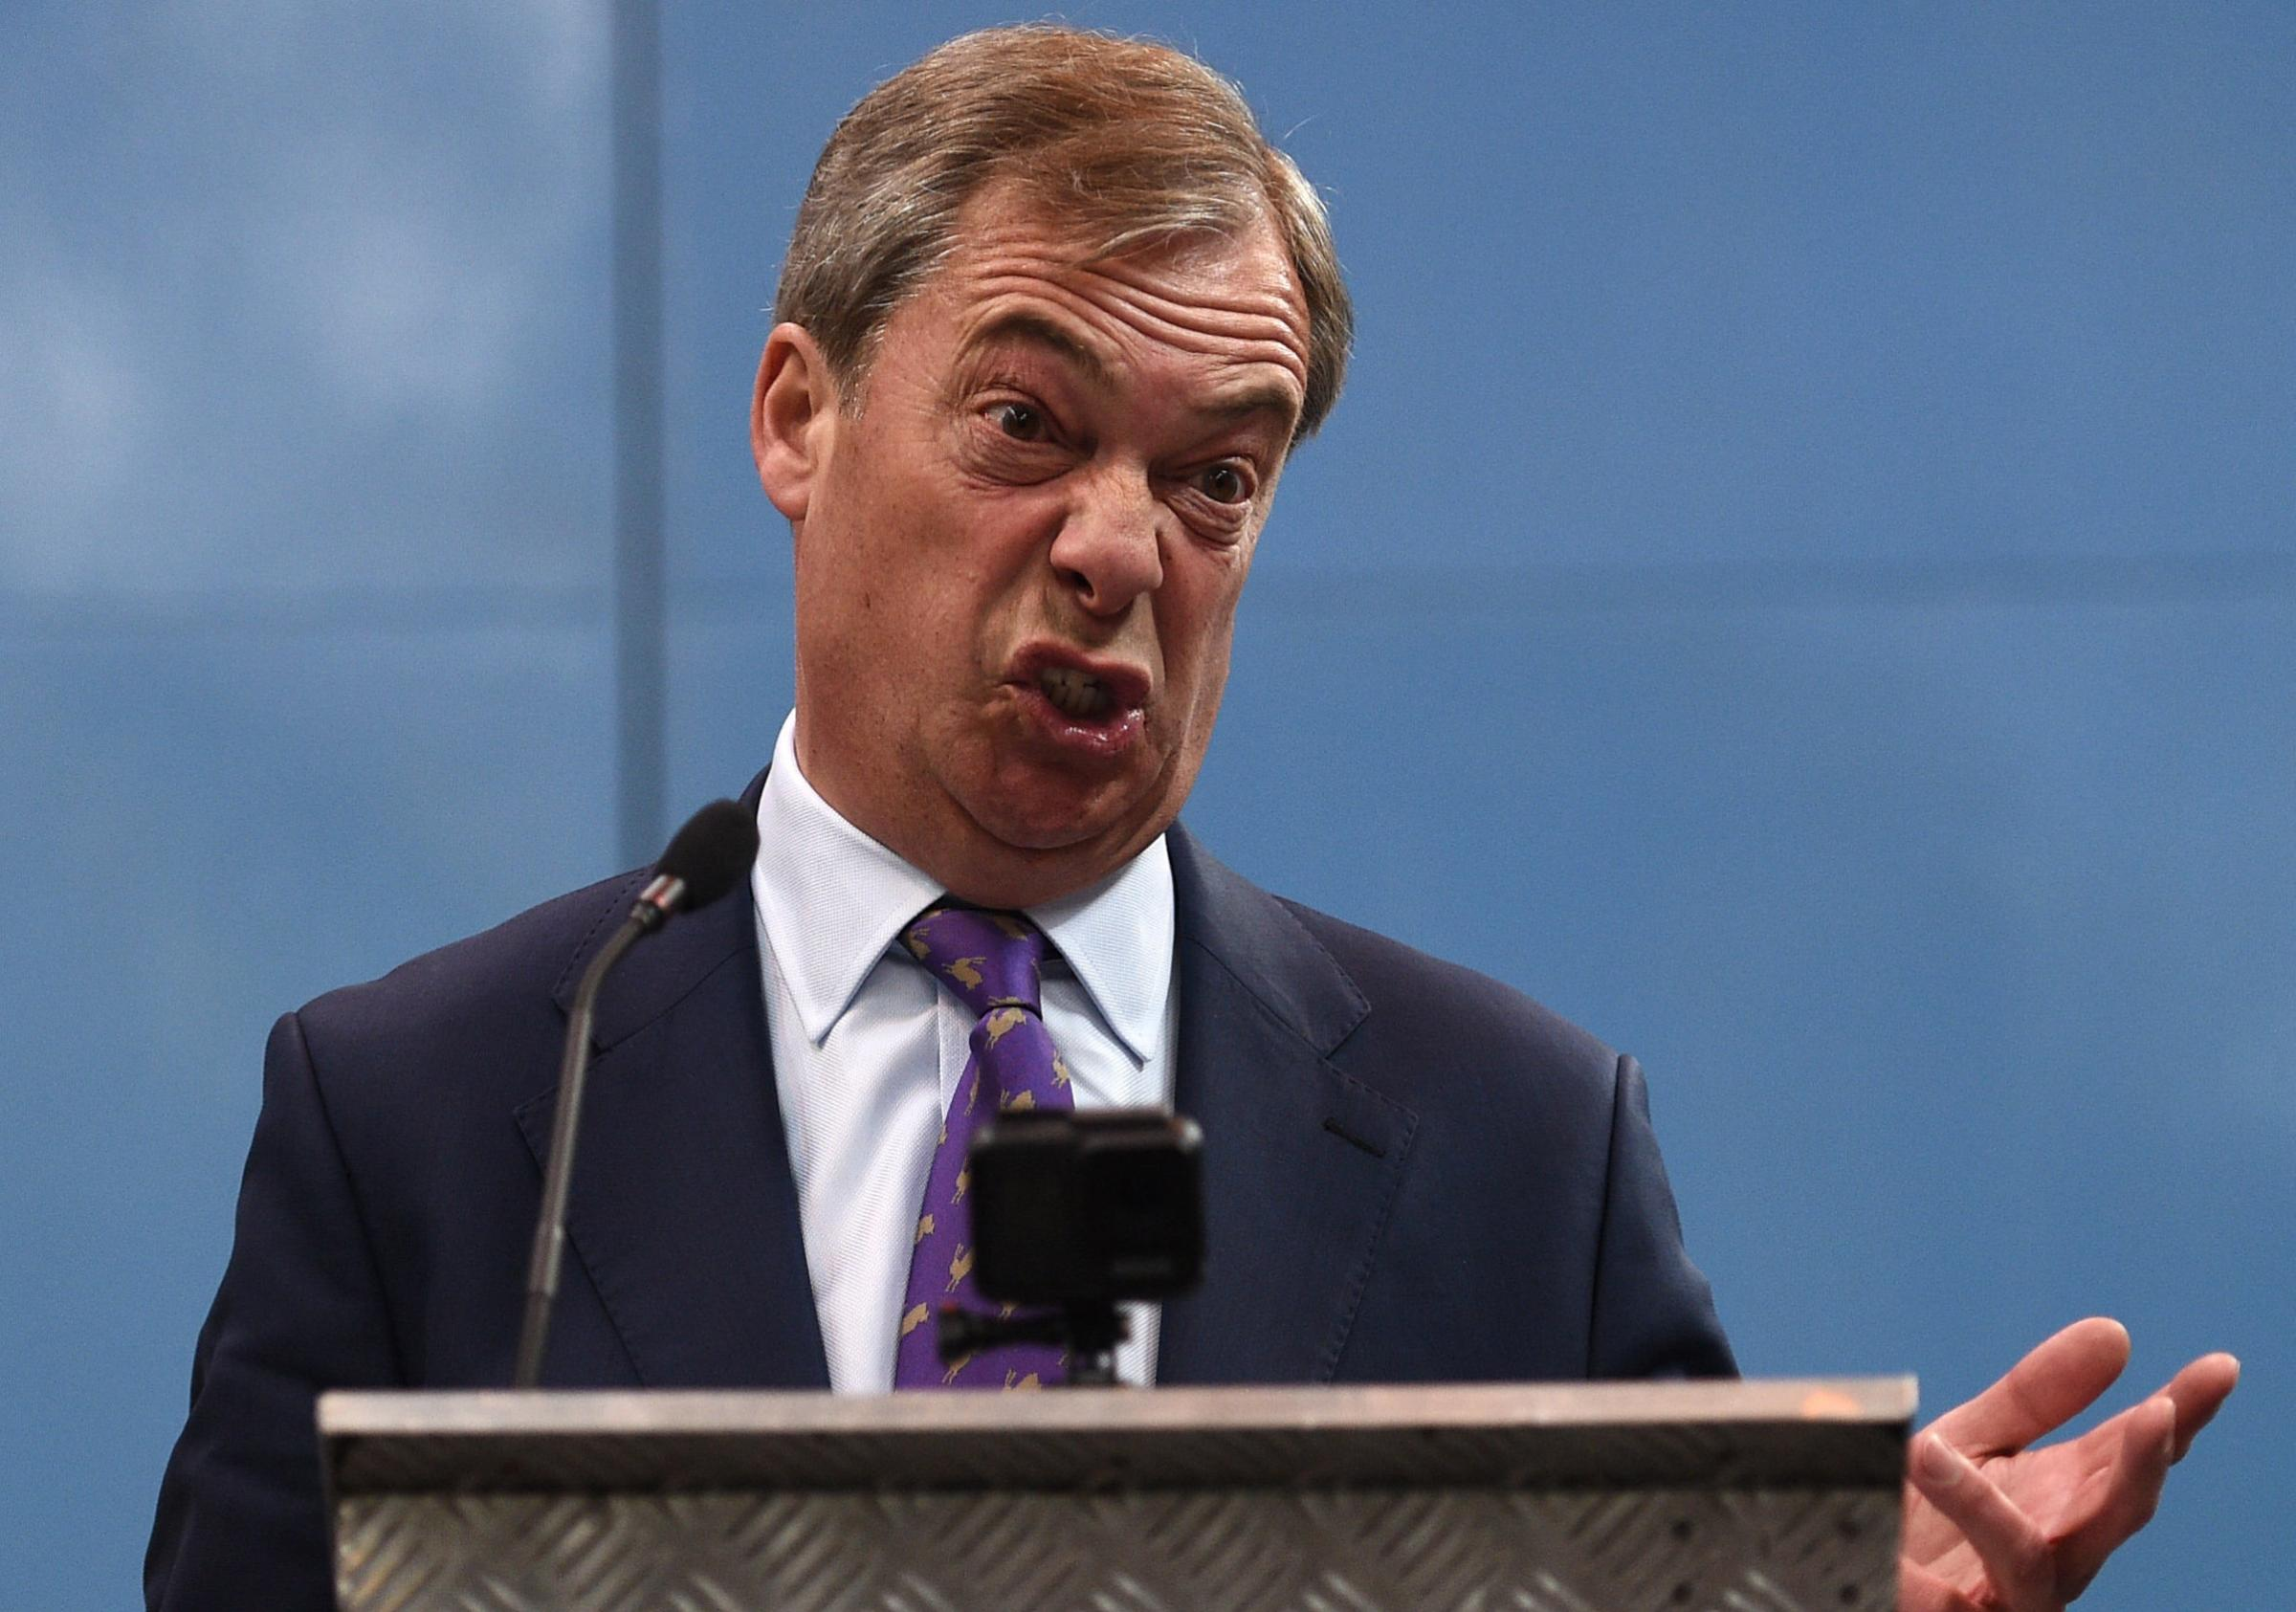 Nigel Farage has his new Brexit Party